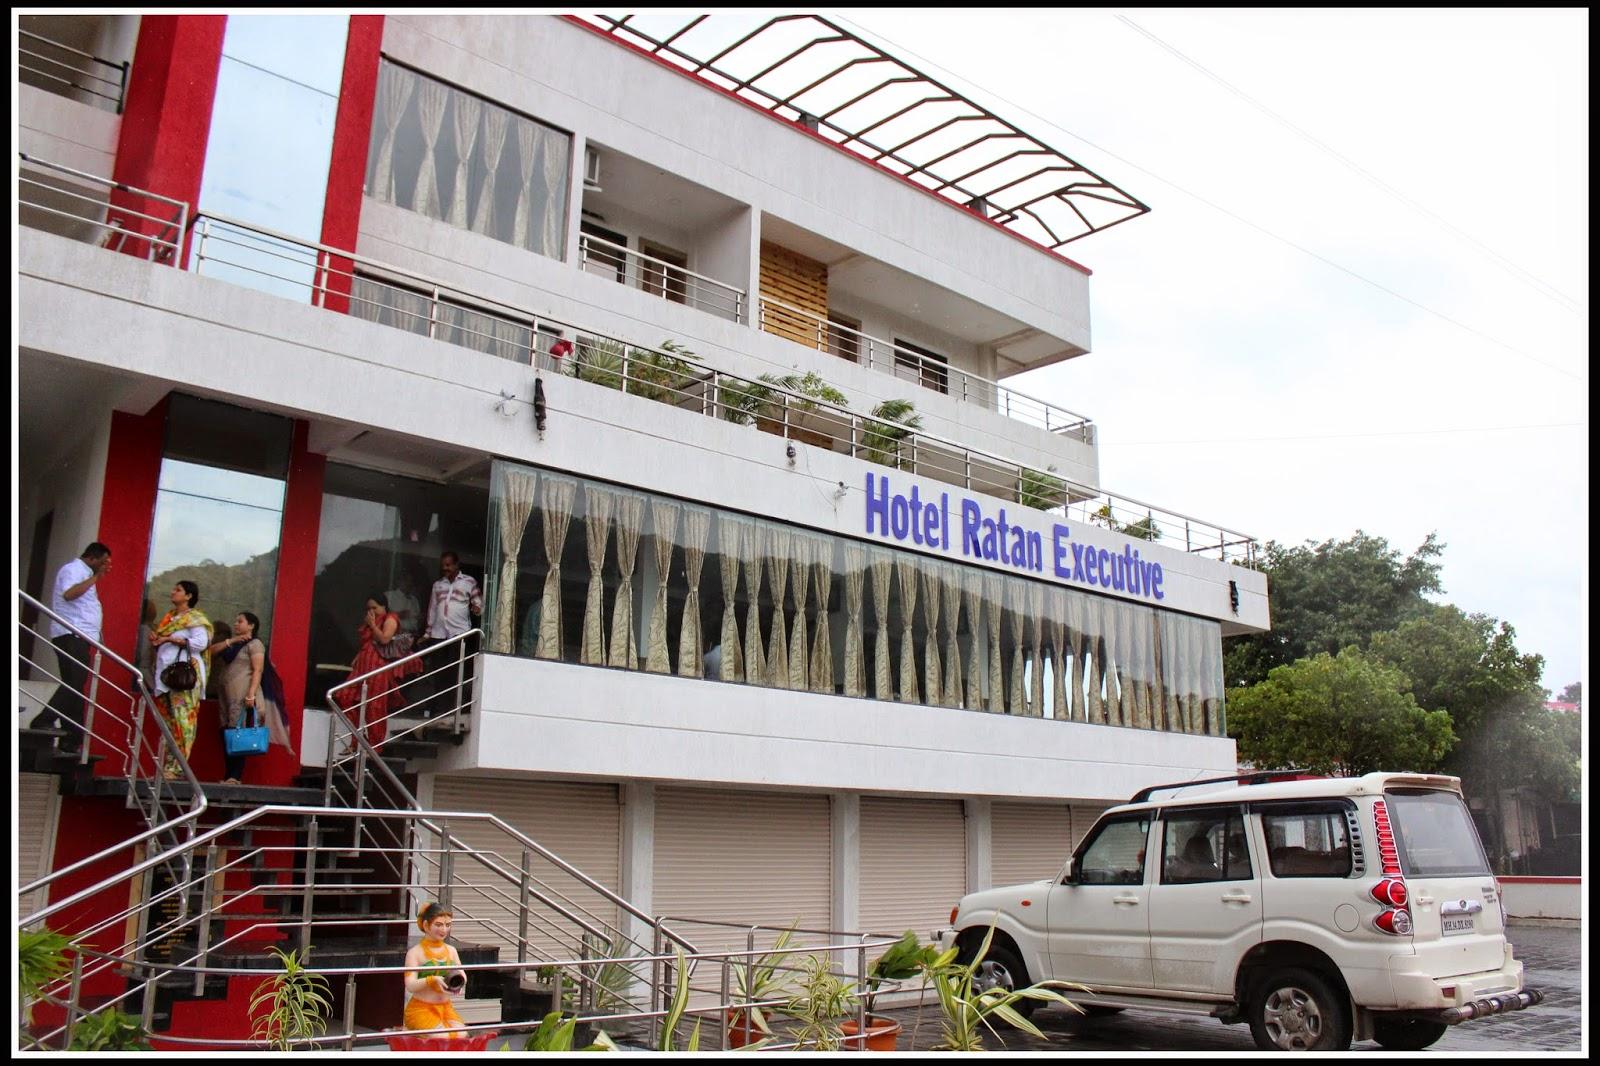 Hotel Ratan Executive, junnar